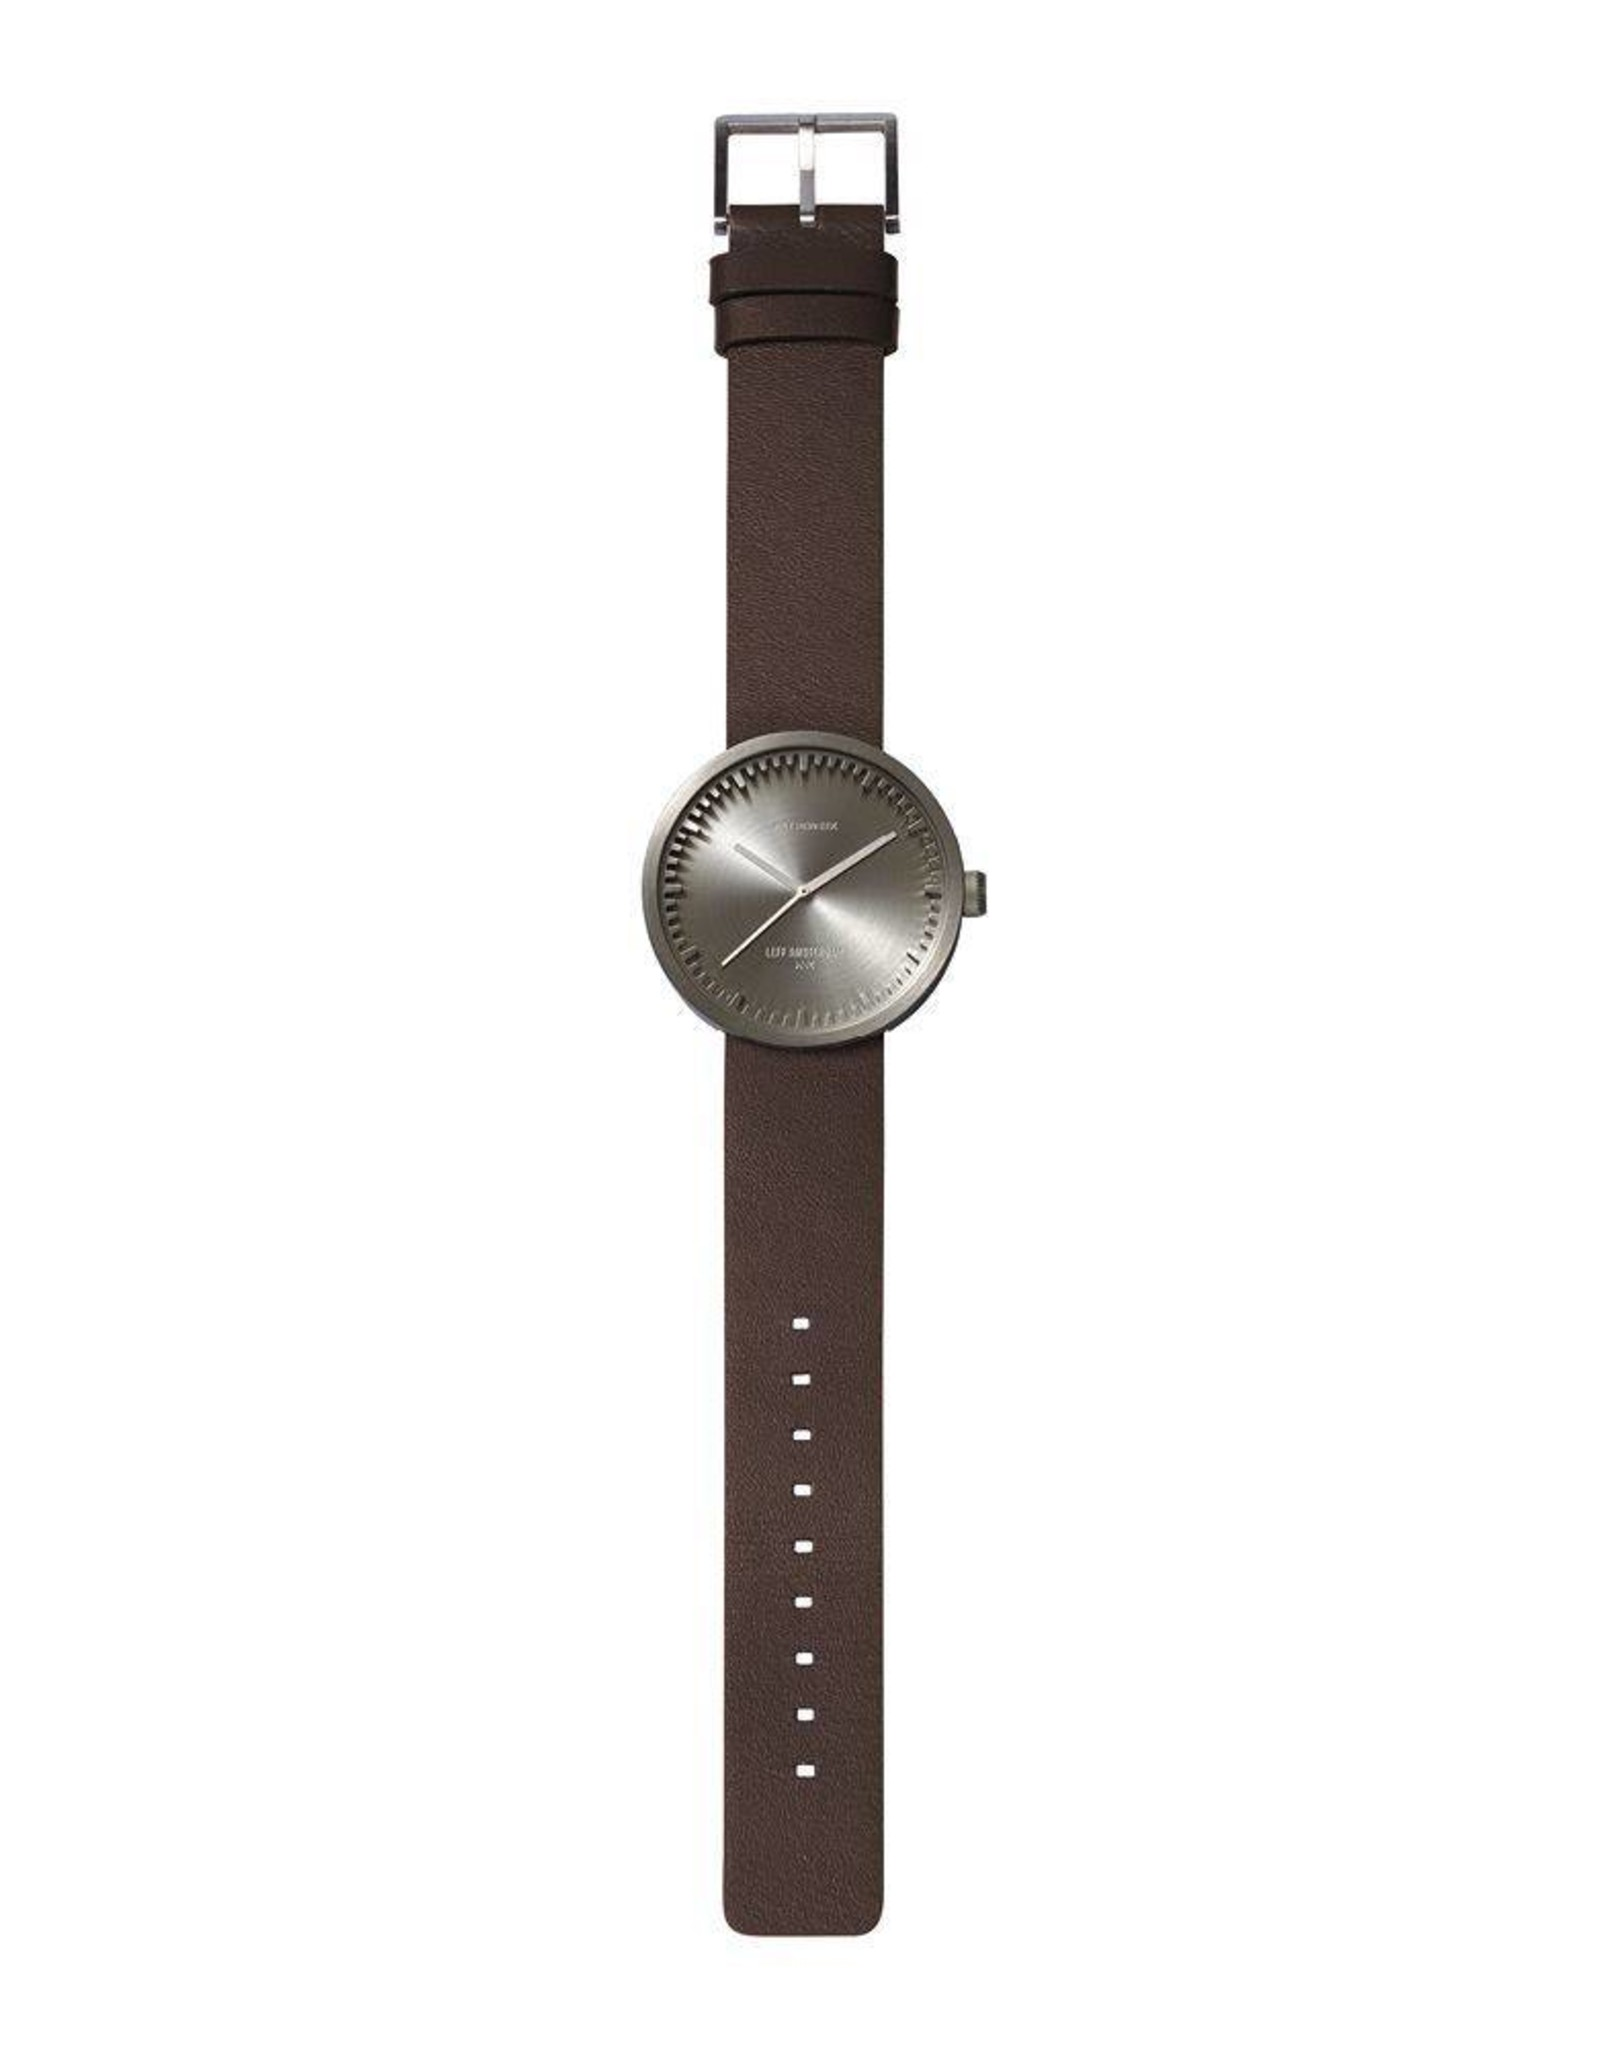 Leff Amsterdam Tube Watch D Leather - Steel